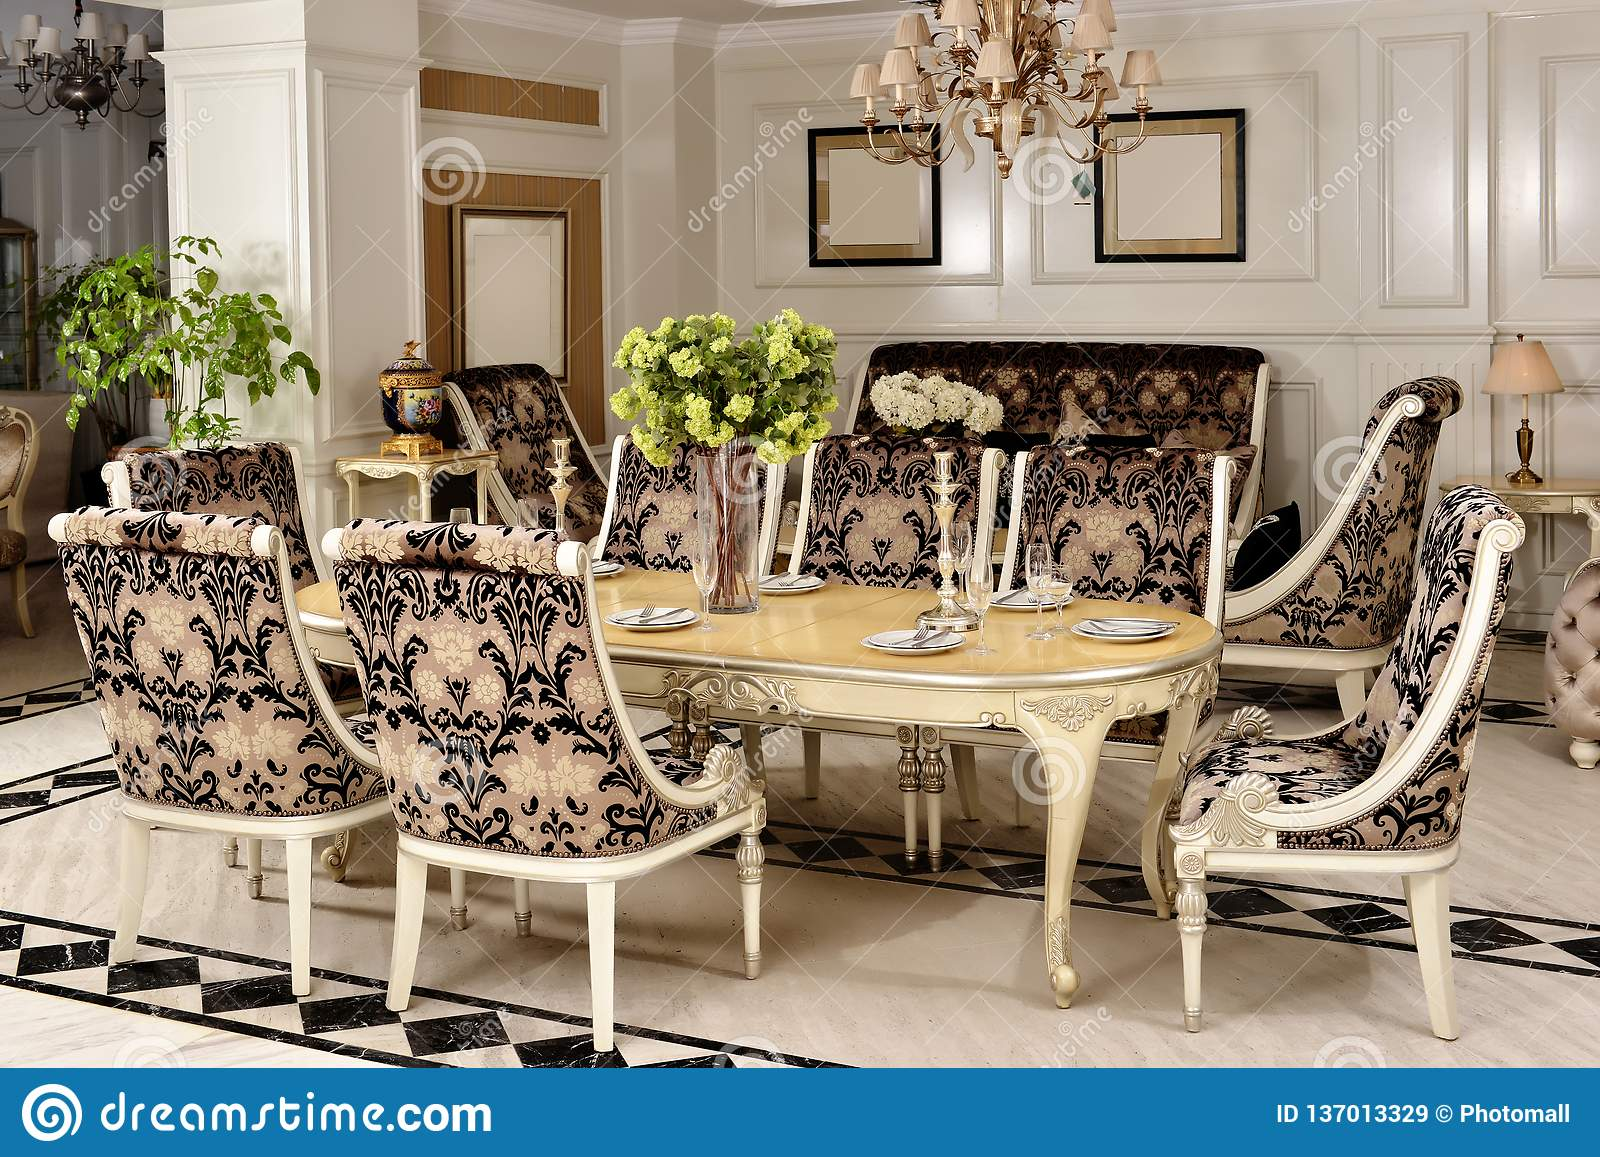 Furniture In Luxury Dining Room Stock Image Image Of Bookcase Furniture 137013329